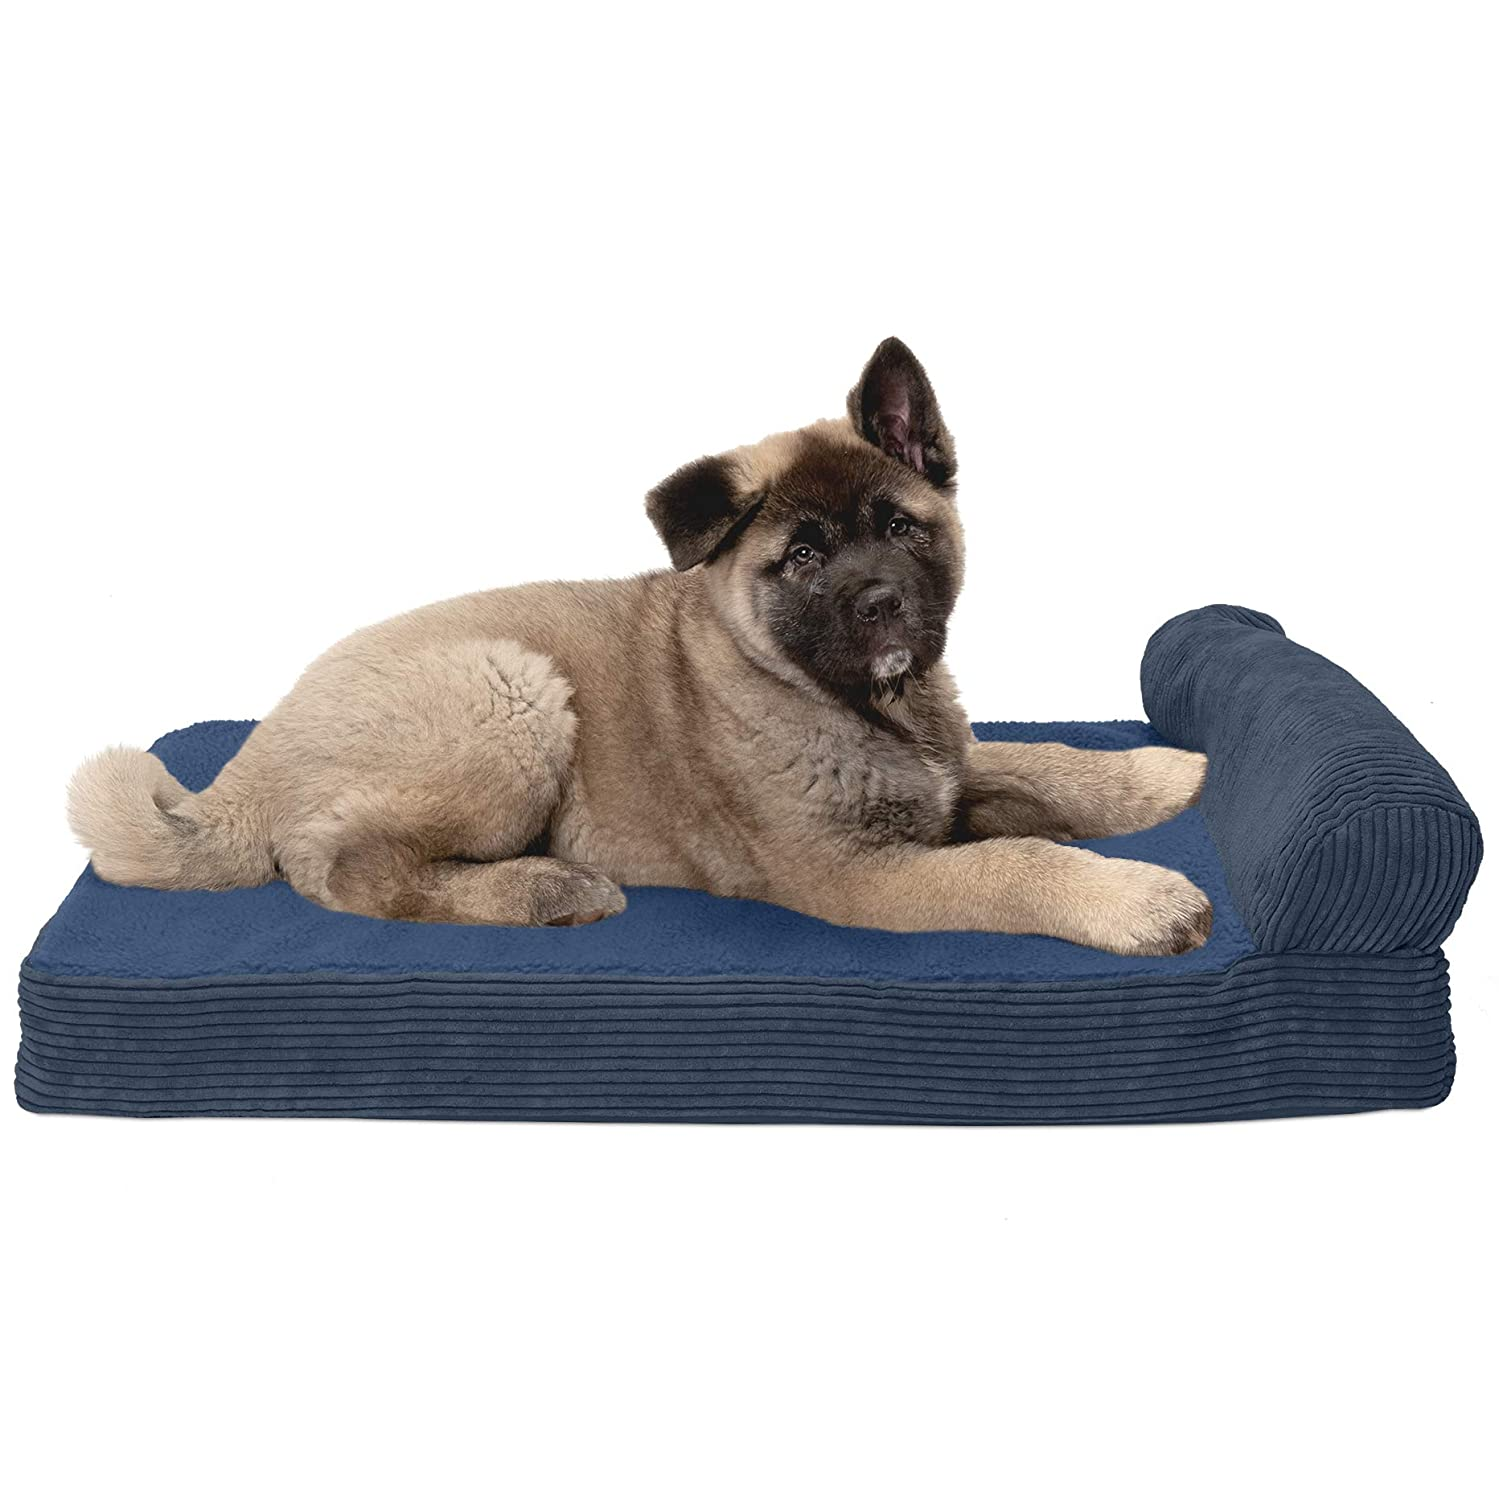 FurHaven Pet Dog Bed   Cooling Gel Memory Foam Orthopedic Faux Fleece & Corduroy Lounge Pet Bed for Dogs & Cats, Navy, Medium